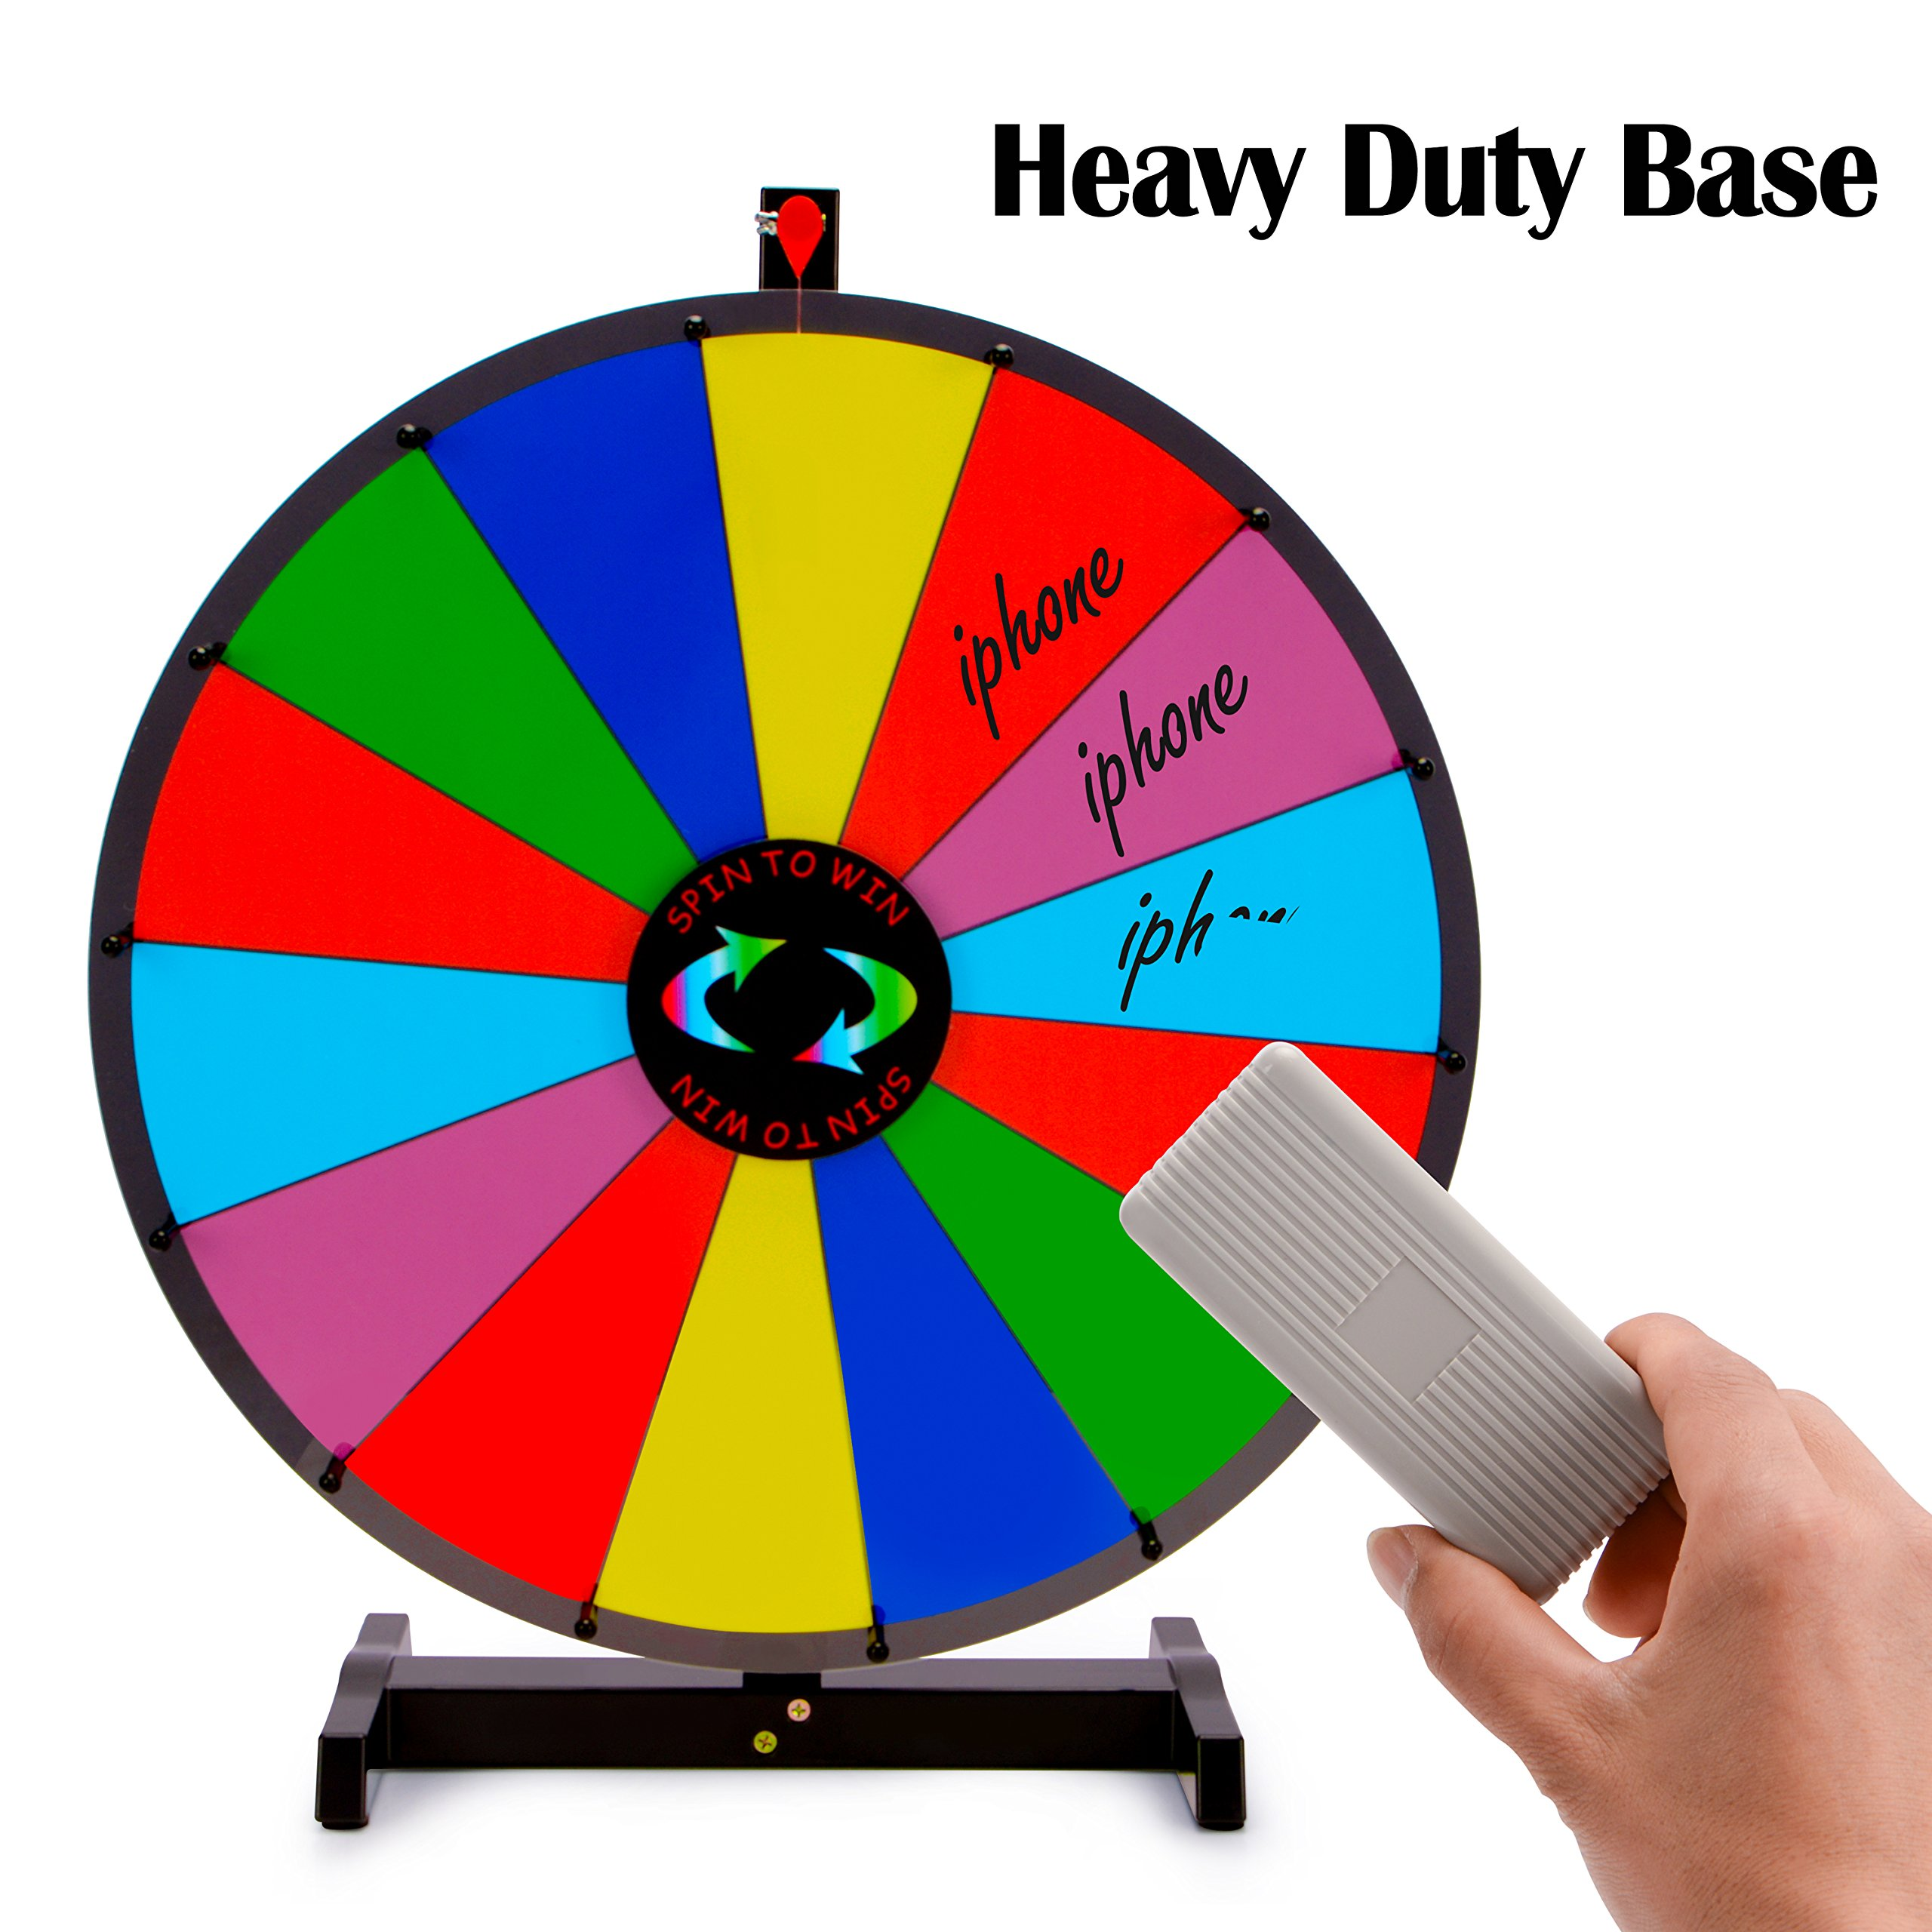 24 Tabletop Color Dry Erase Spinning Prize Wheel 14 Slot W Aluminum Stand Diy Customize Template For Fortune Tradeshow Desk Top Casino Style Drawing Game Sports Fitness Casino Prize Wheels Tutiflores Com Br